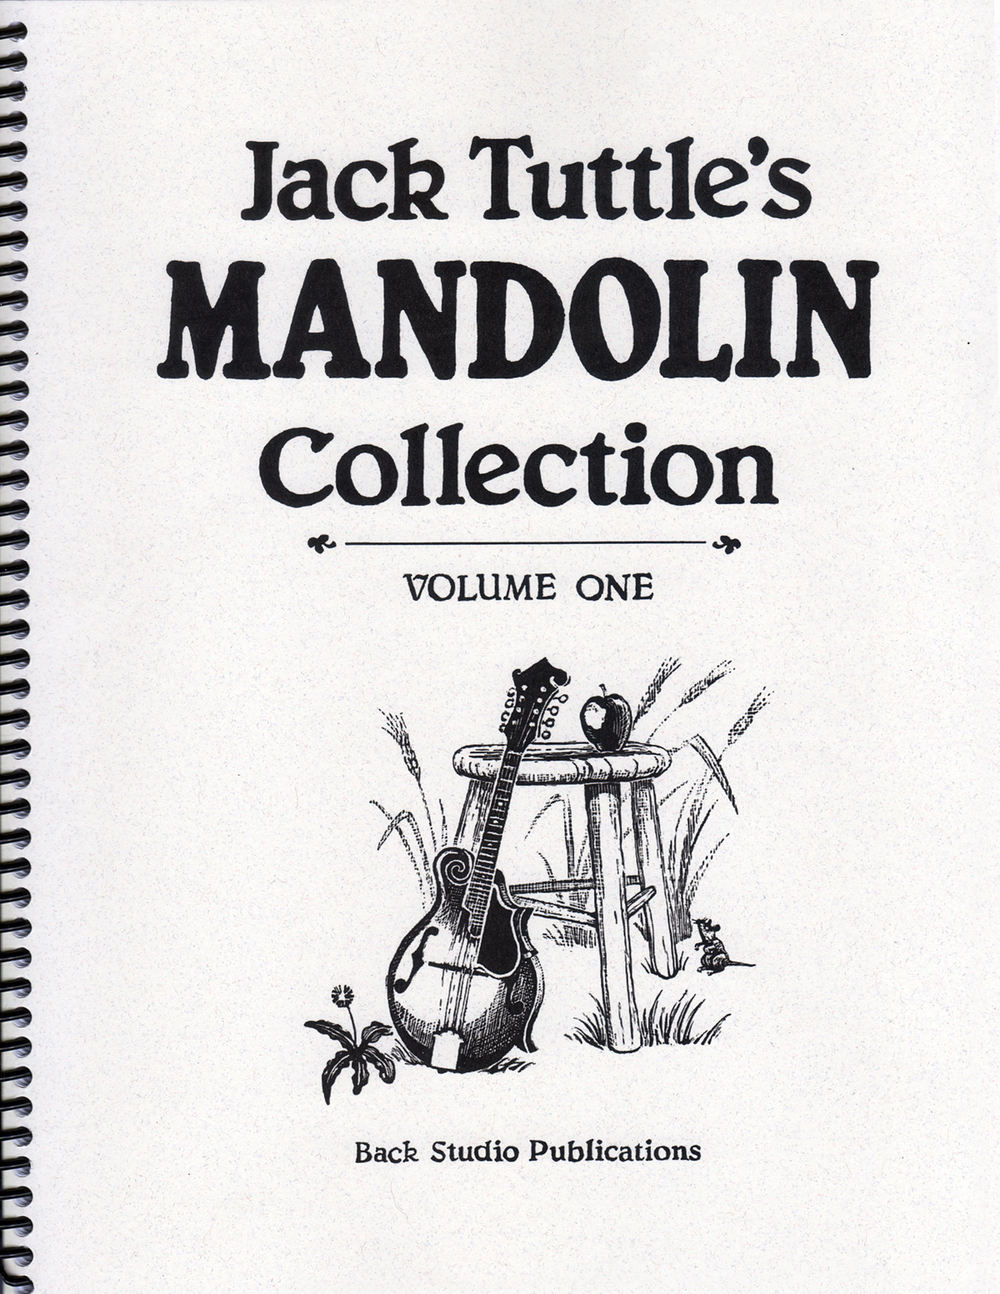 Jack Tuttle's Mandolin Collection, Vol. 1